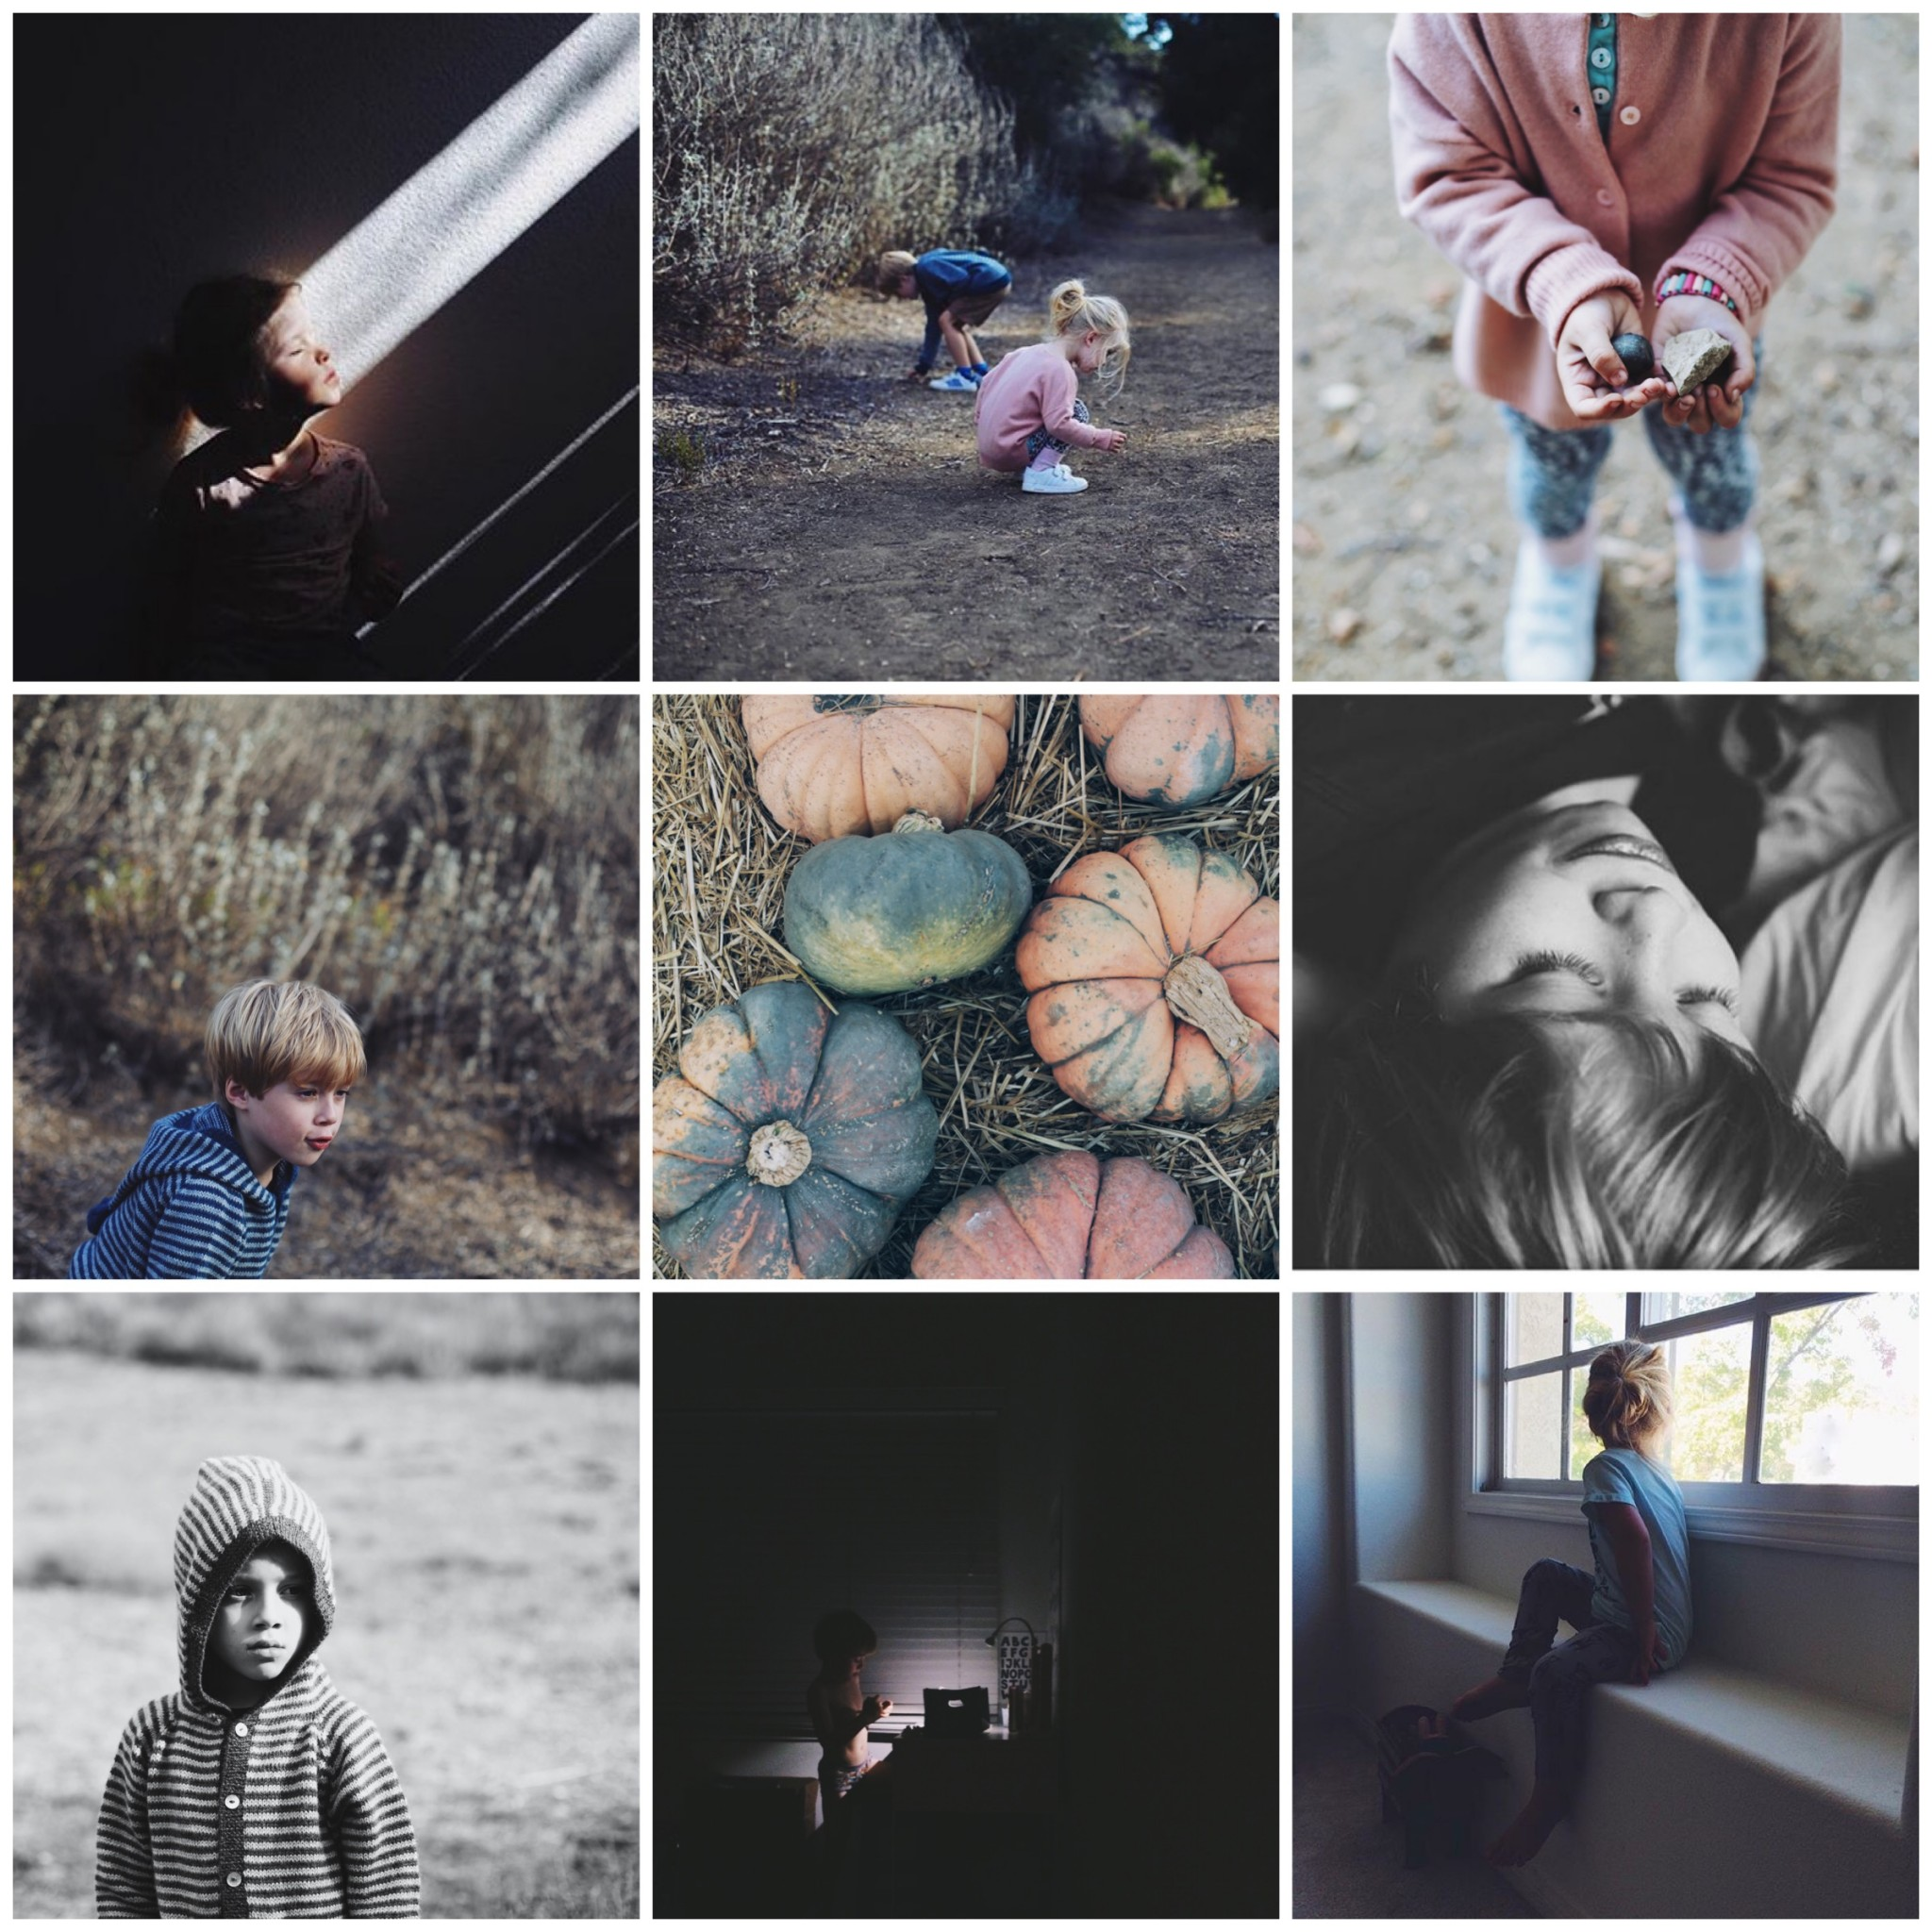 October on Instagram @madebylon